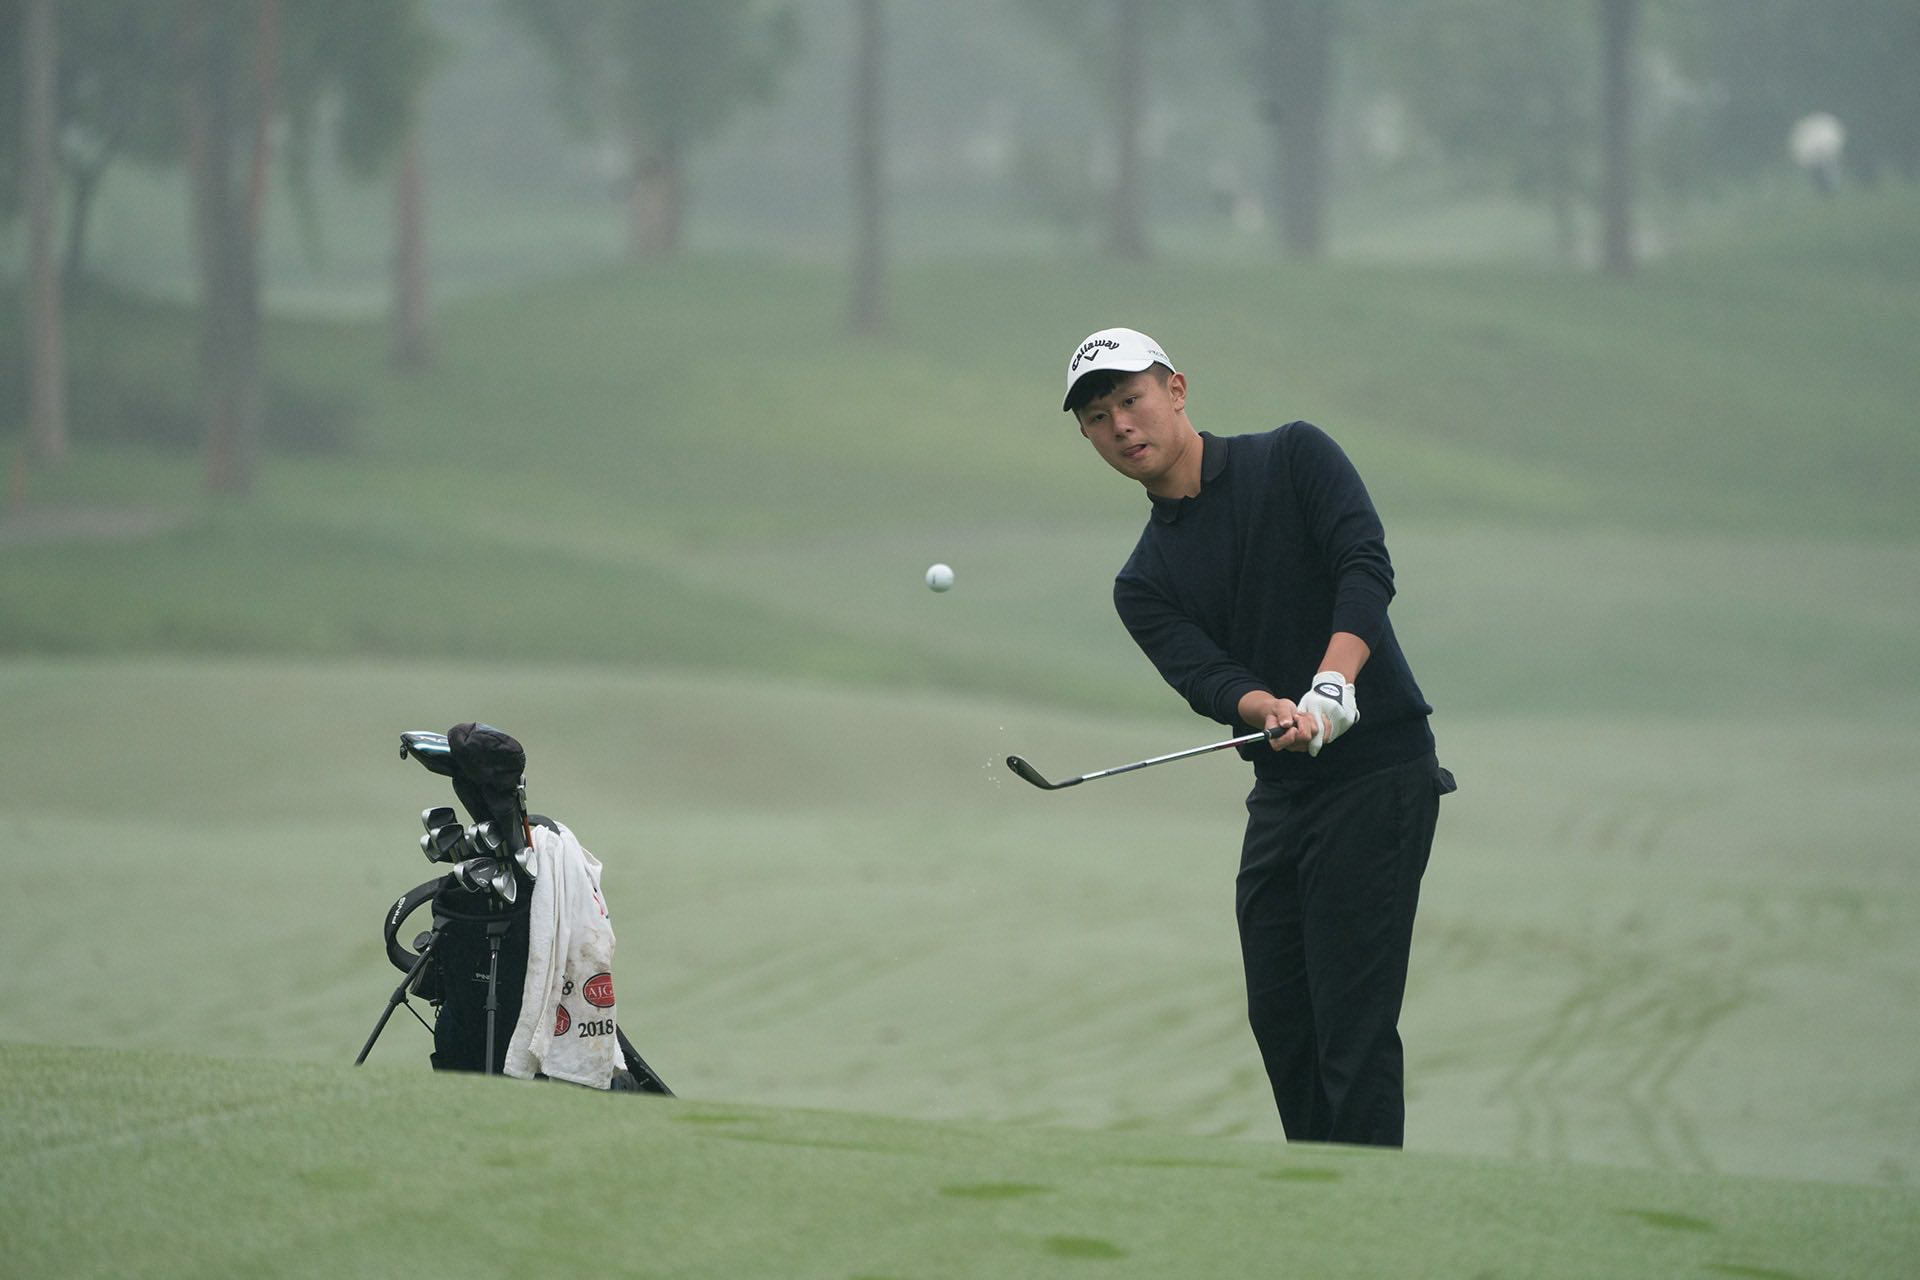 Hsiao Che Yang First Team Junior All-Asia Chip Shot at The Southern Junior